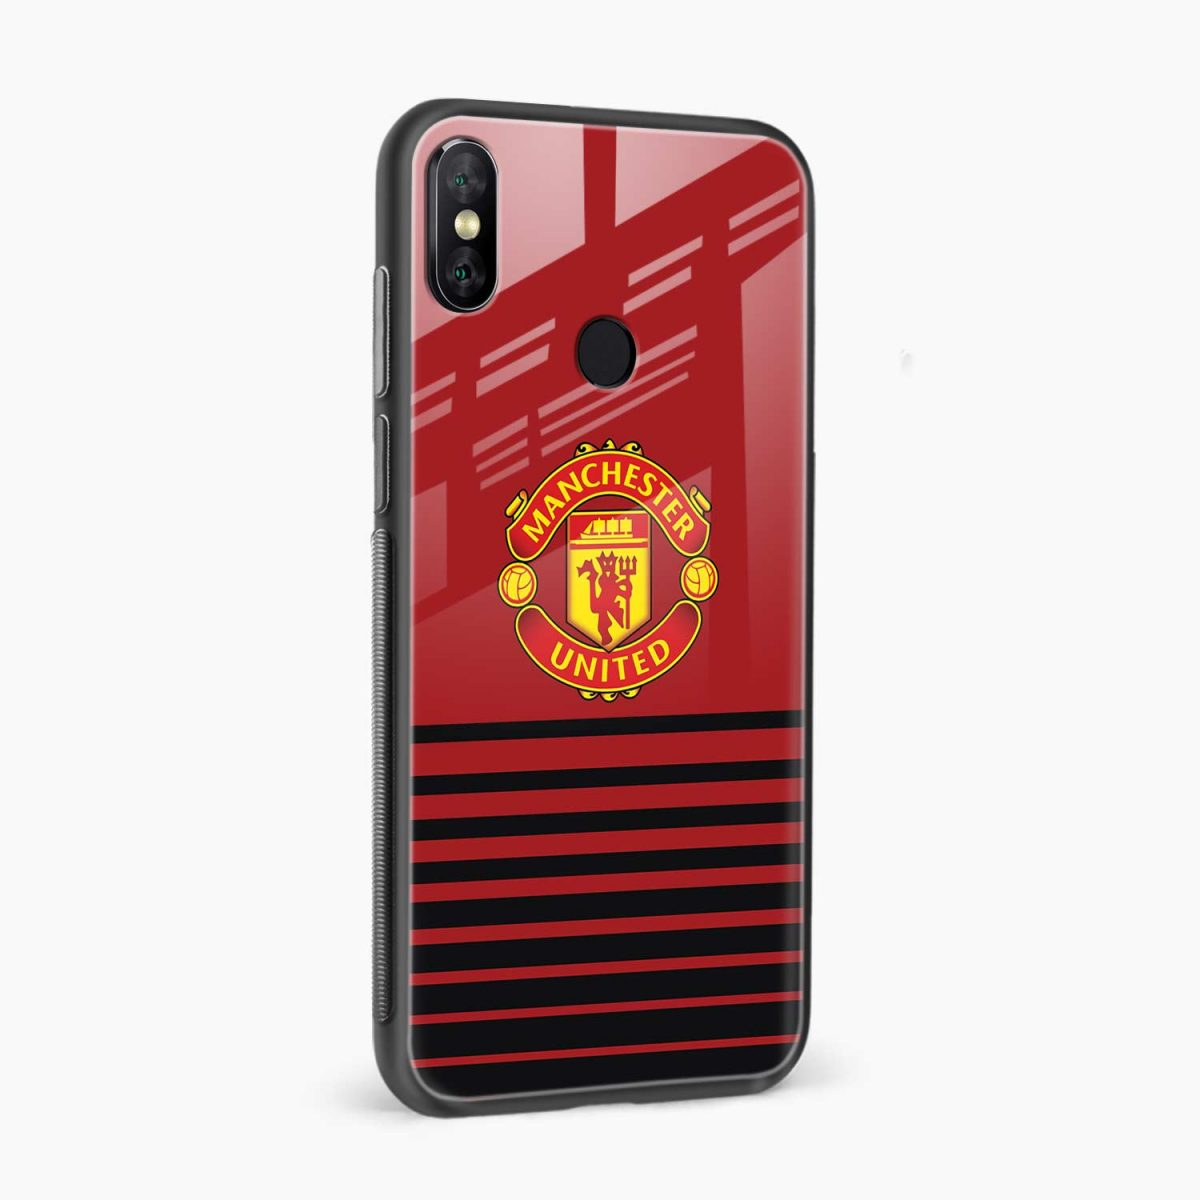 manchester united redmi note 5 pro back cover side view